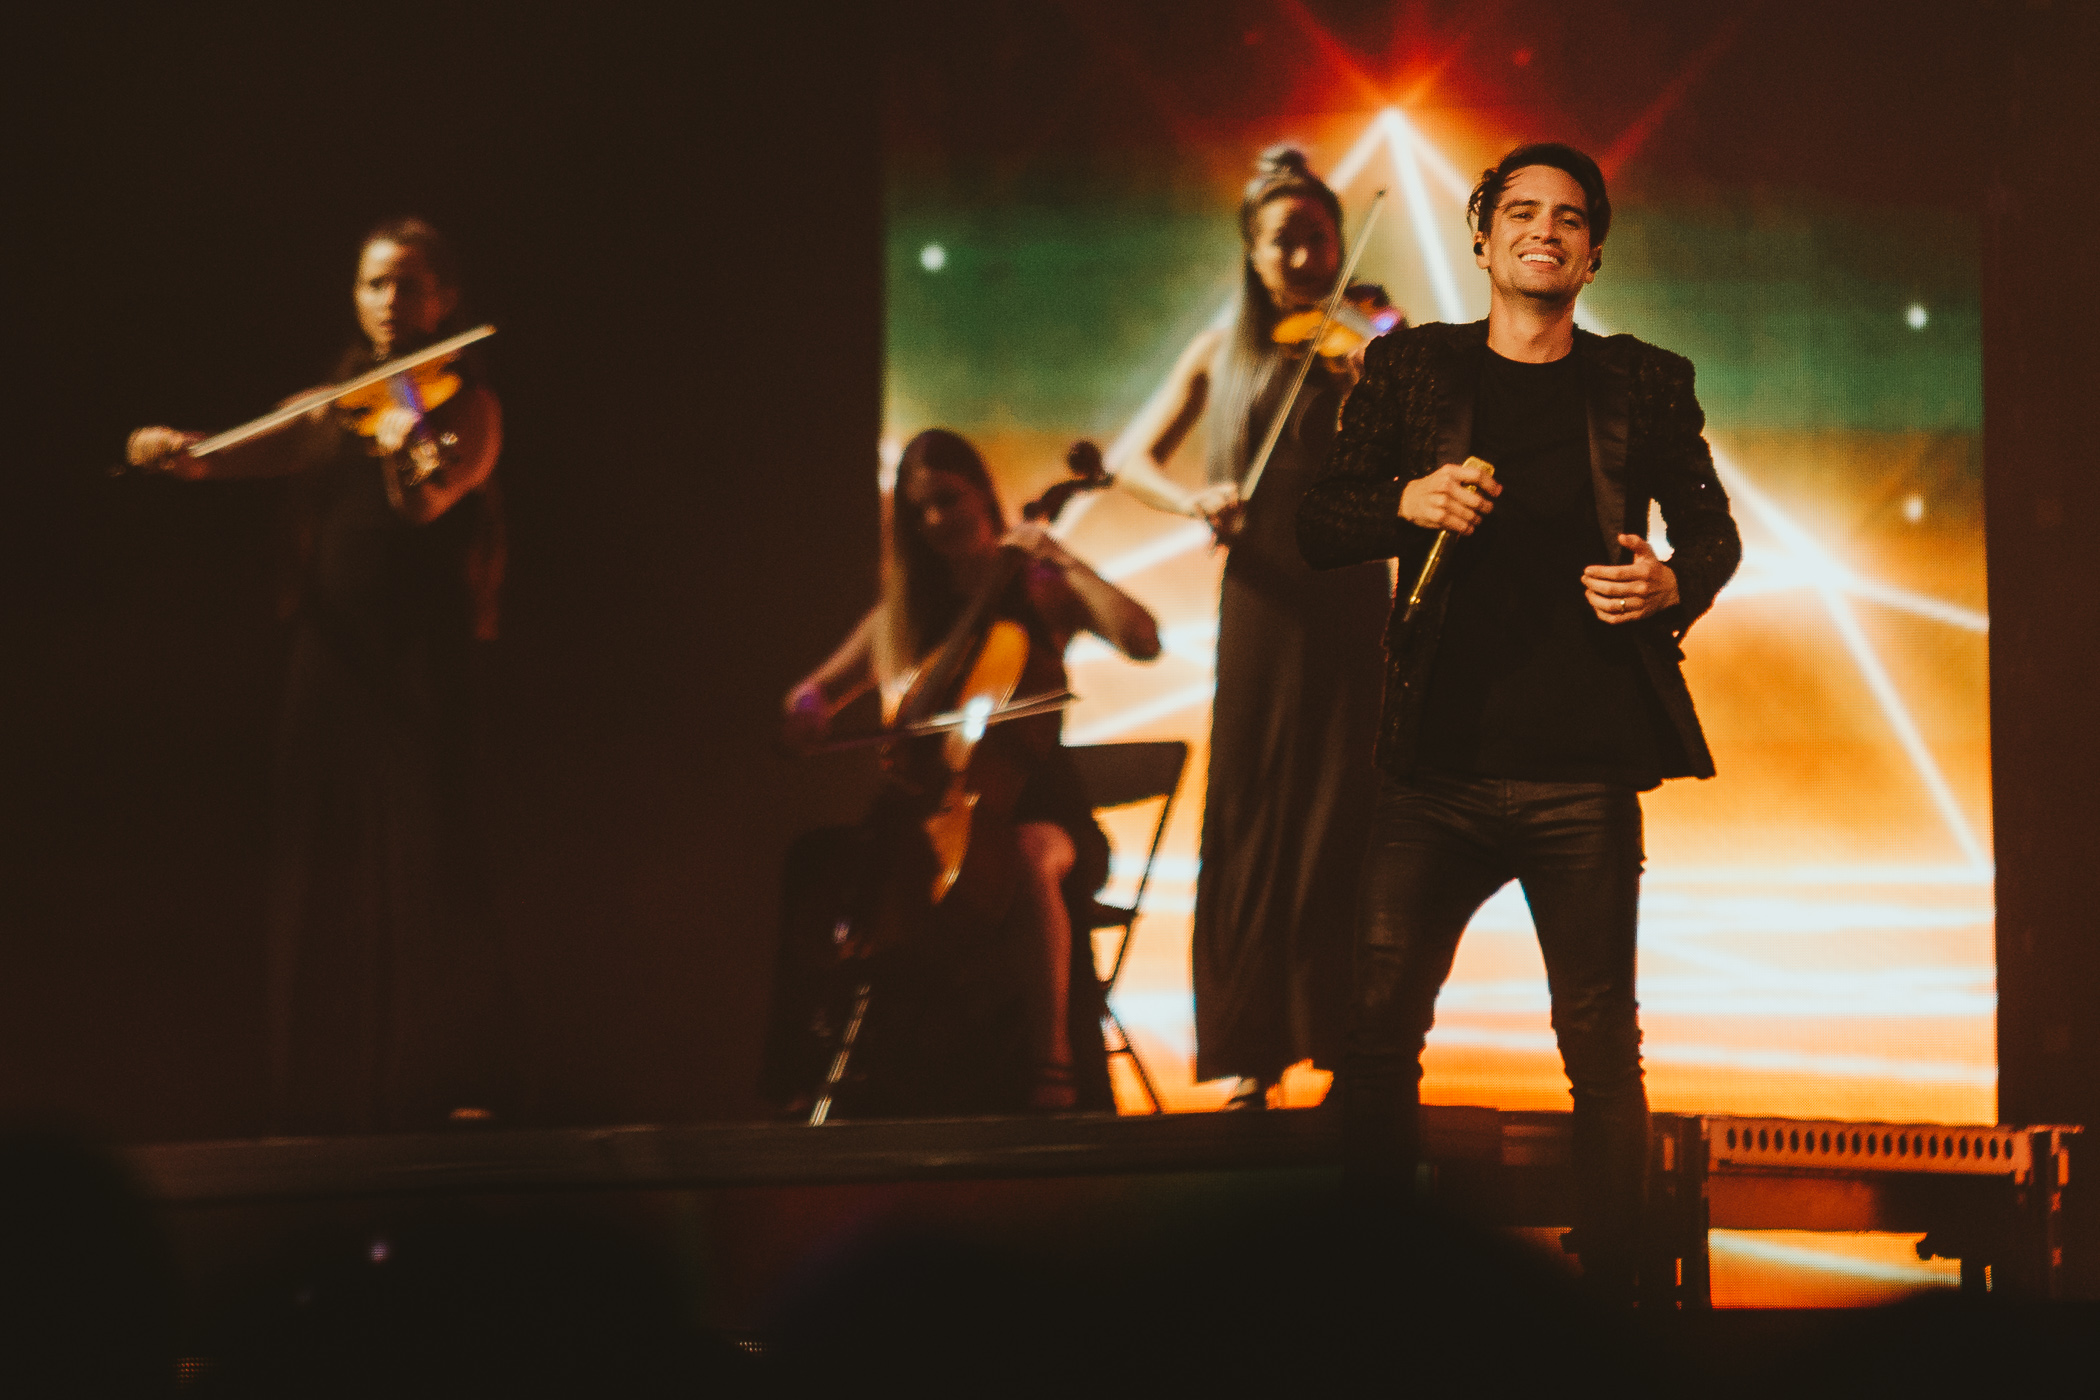 1_Panic!_At_The_Disco-Rogers_Arena-Timothy_Nguyen-20180811-8.jpg